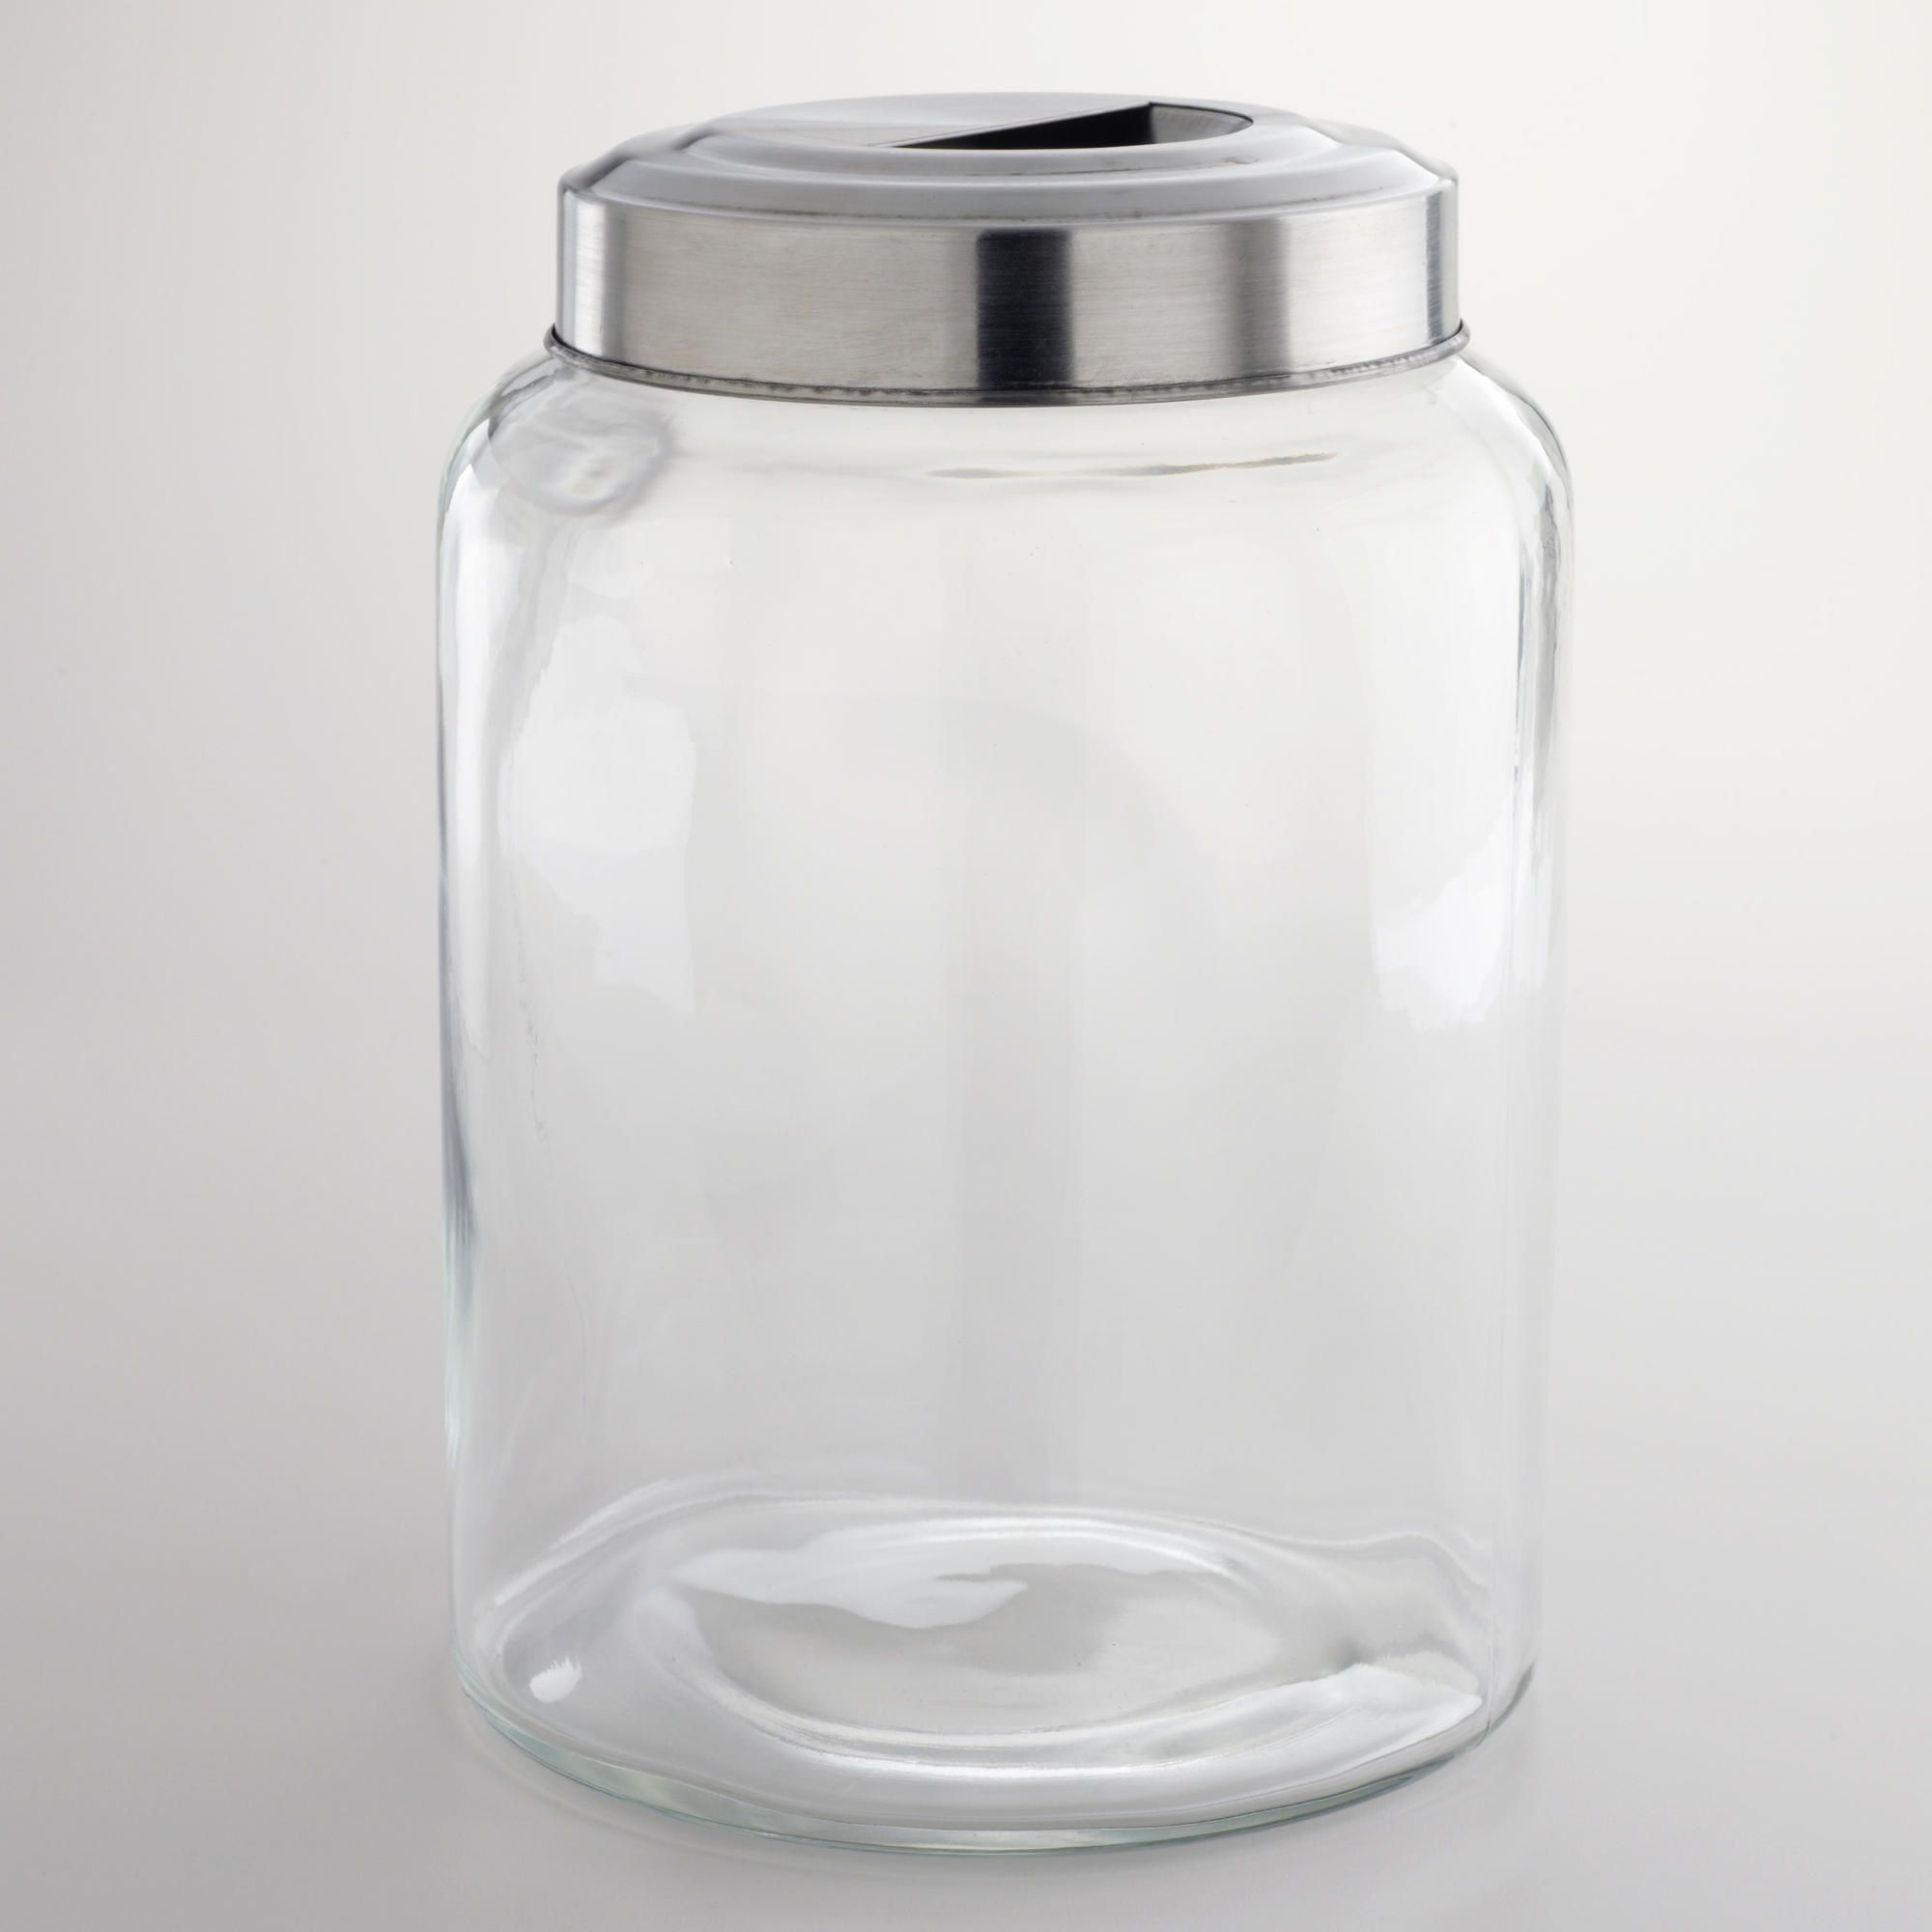 Large Kitchen Glass Jar | World $14 Market (has A Seal, Good For Reaching  In With 2 Cup Measuring Cup, Wide Mouth)